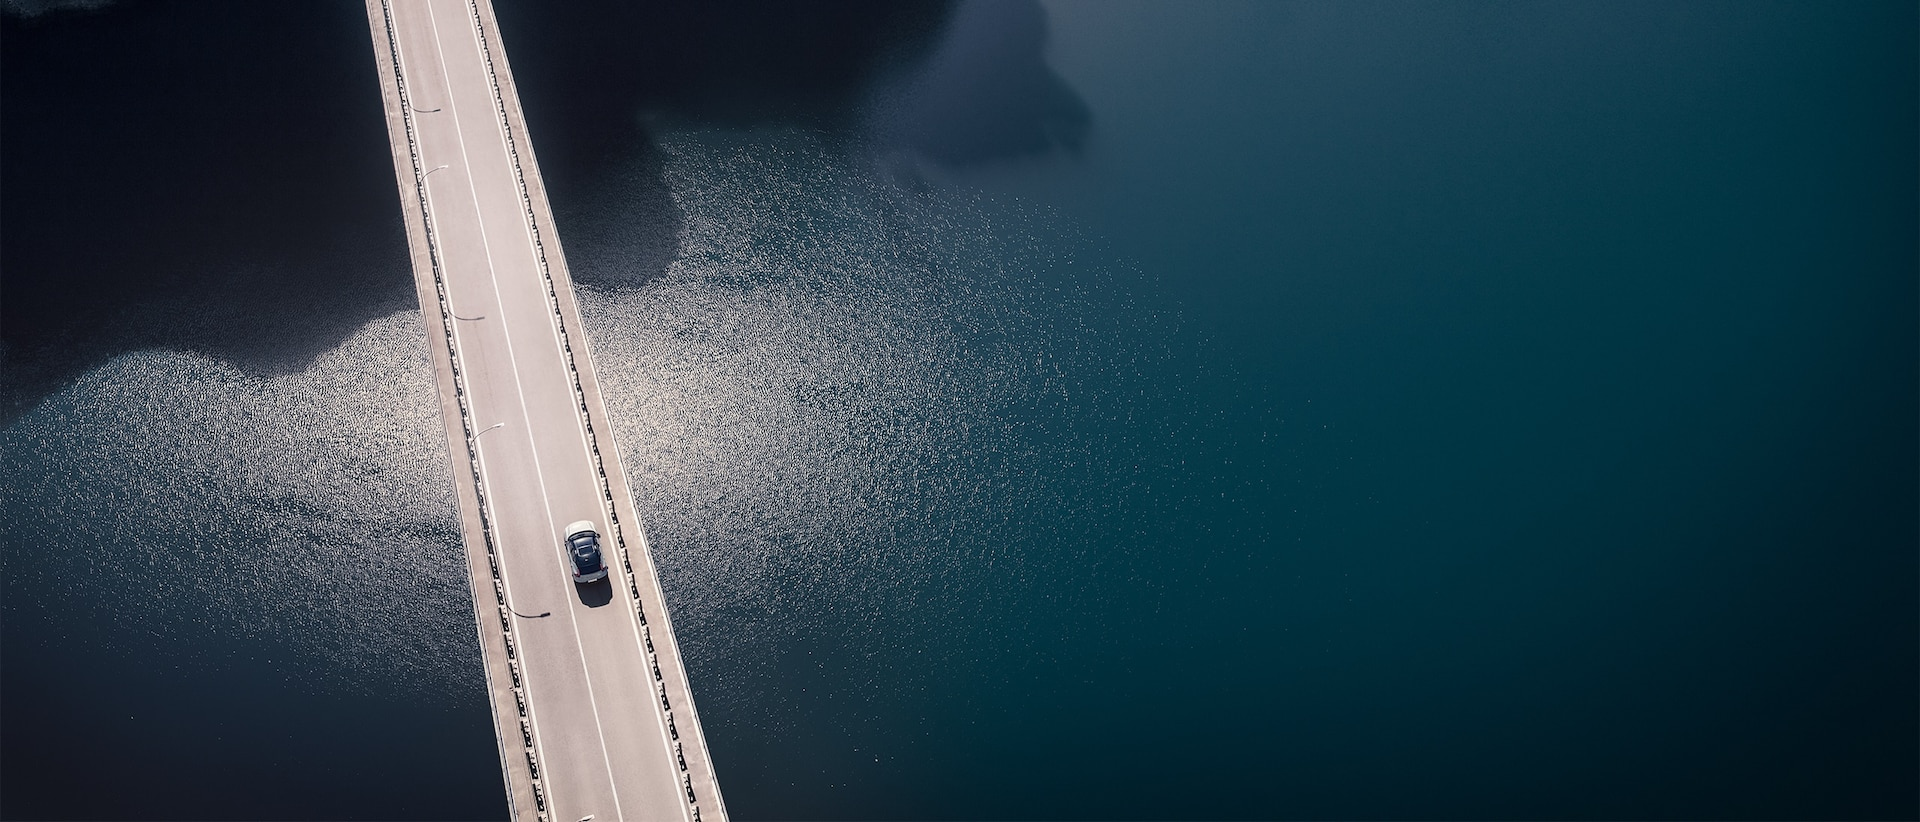 Aerial view of a new Volvo XC40 Recharge Pure Electric SUV as it crosses a two-lane bridge high above calm, dark grey water, heading for a tunnel.